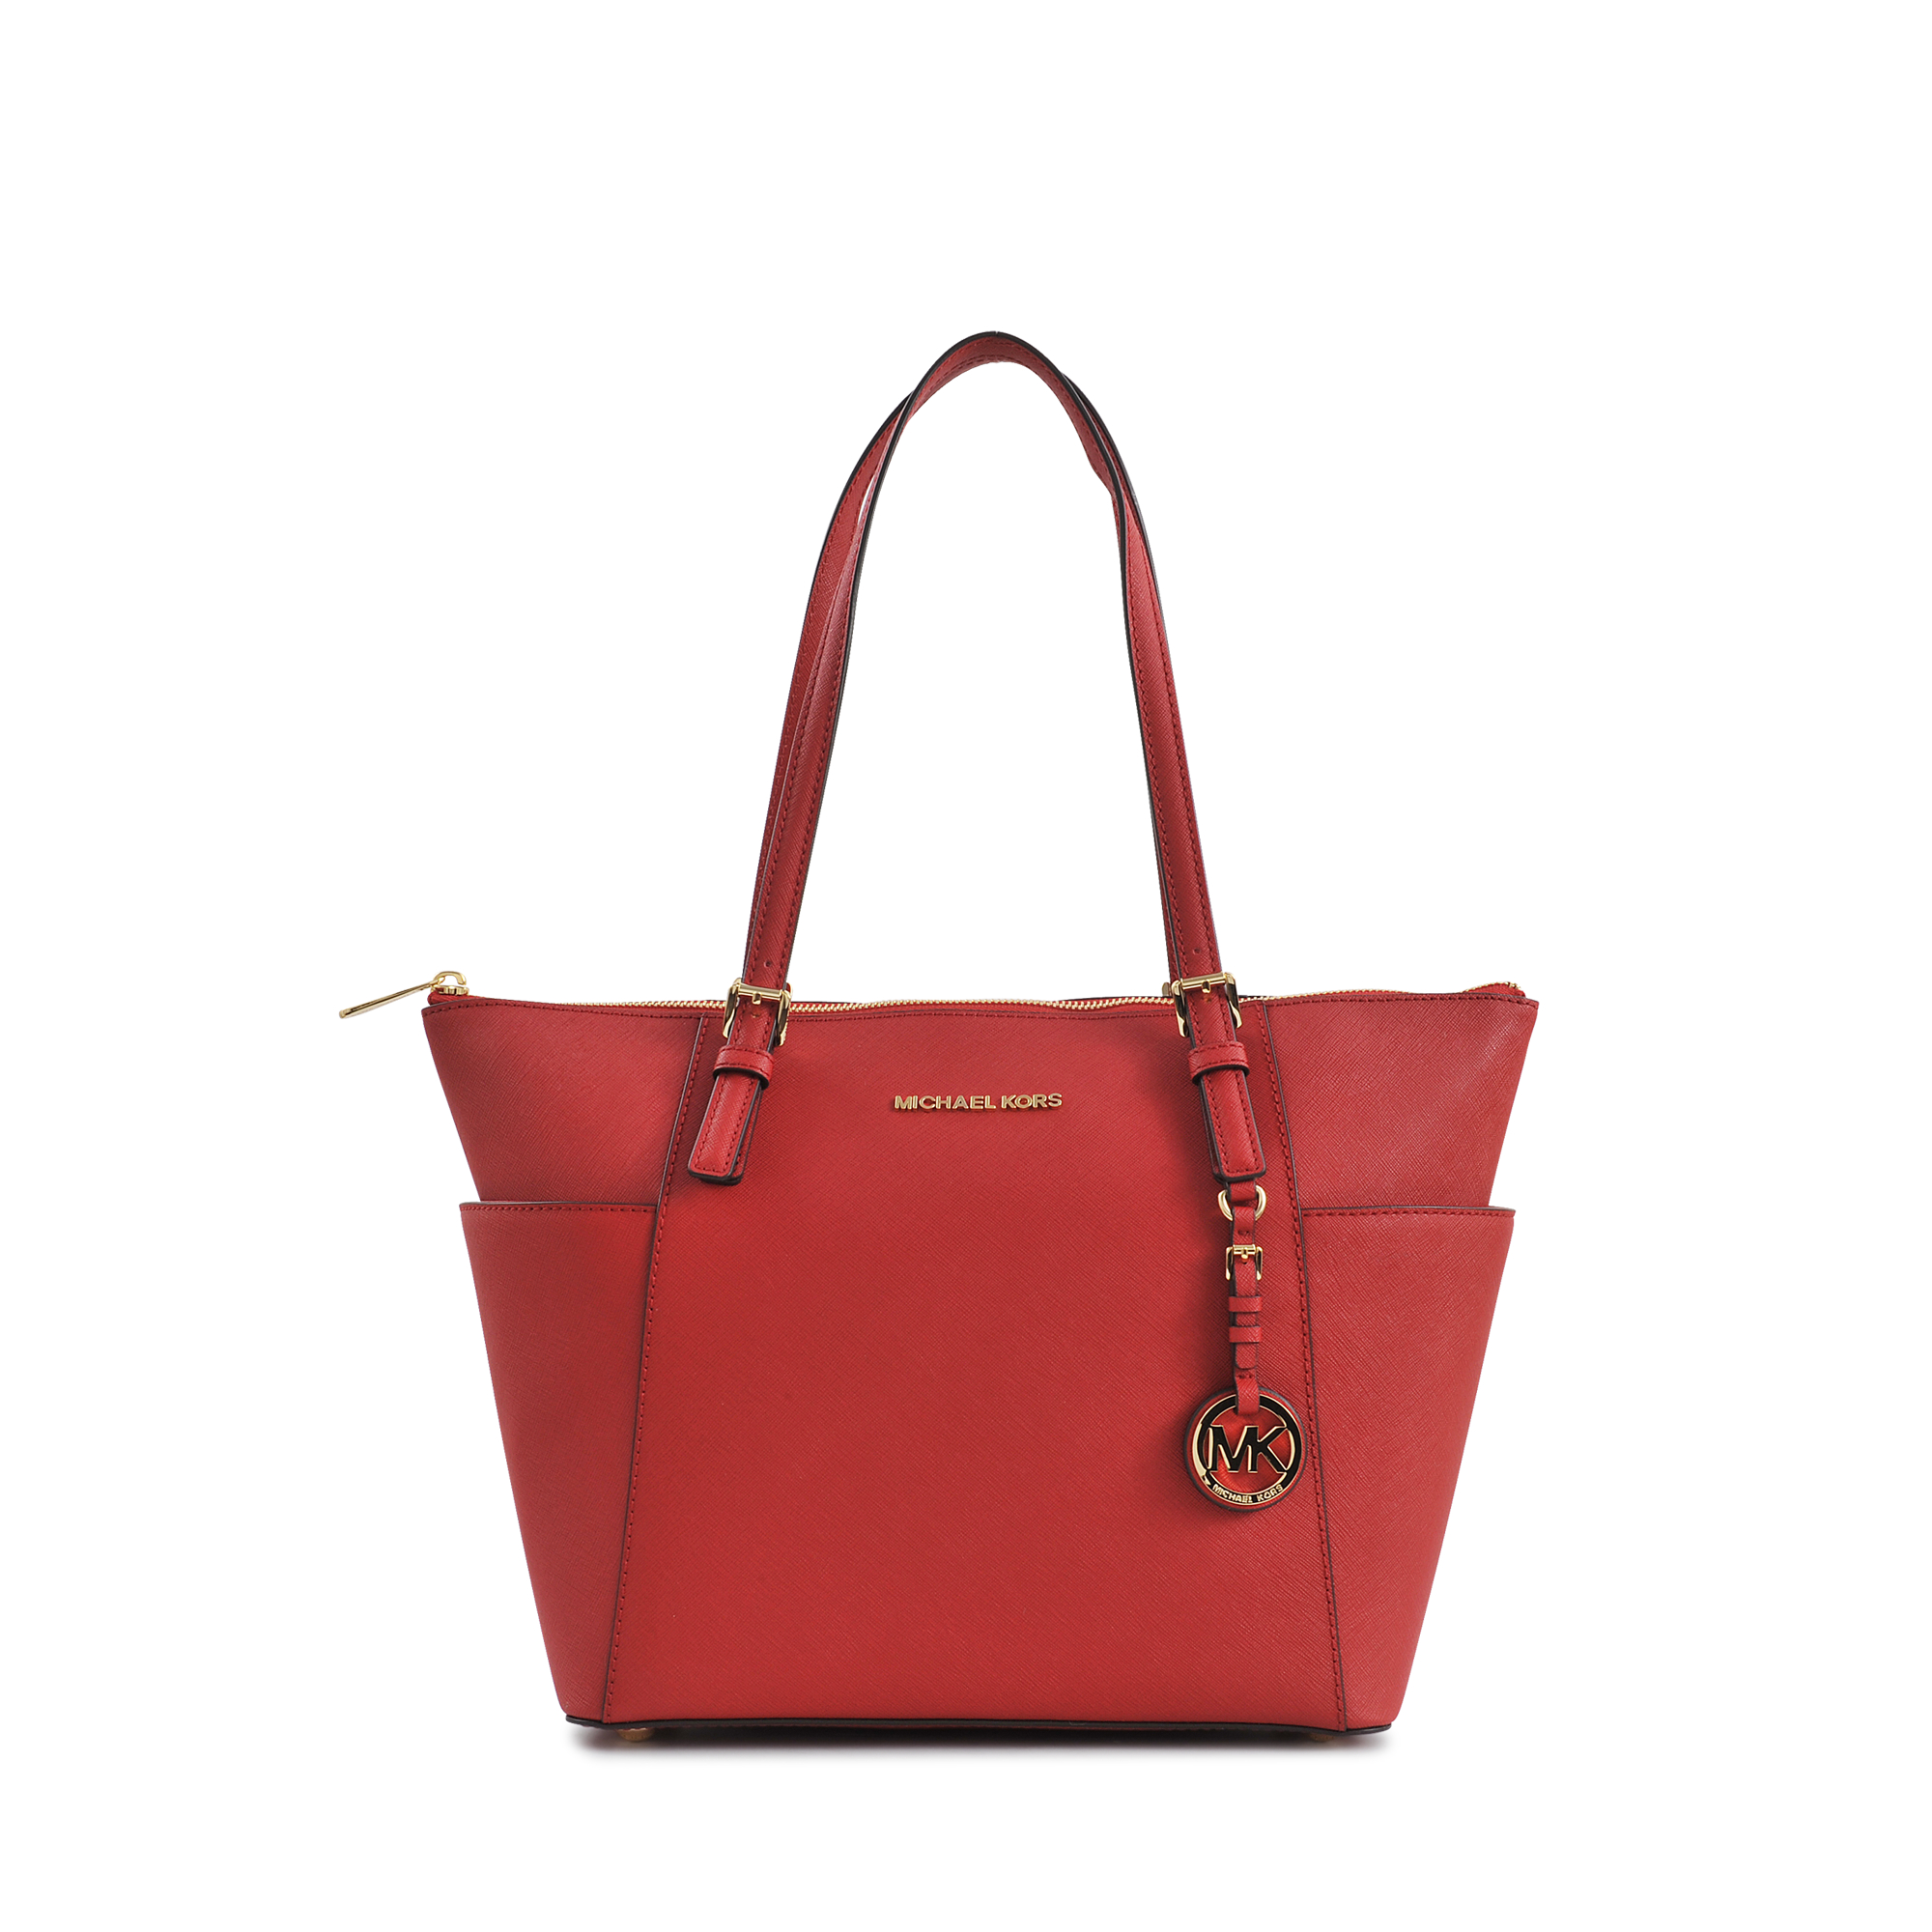 michael kors zipped jet set item ew tz tote in red lyst. Black Bedroom Furniture Sets. Home Design Ideas